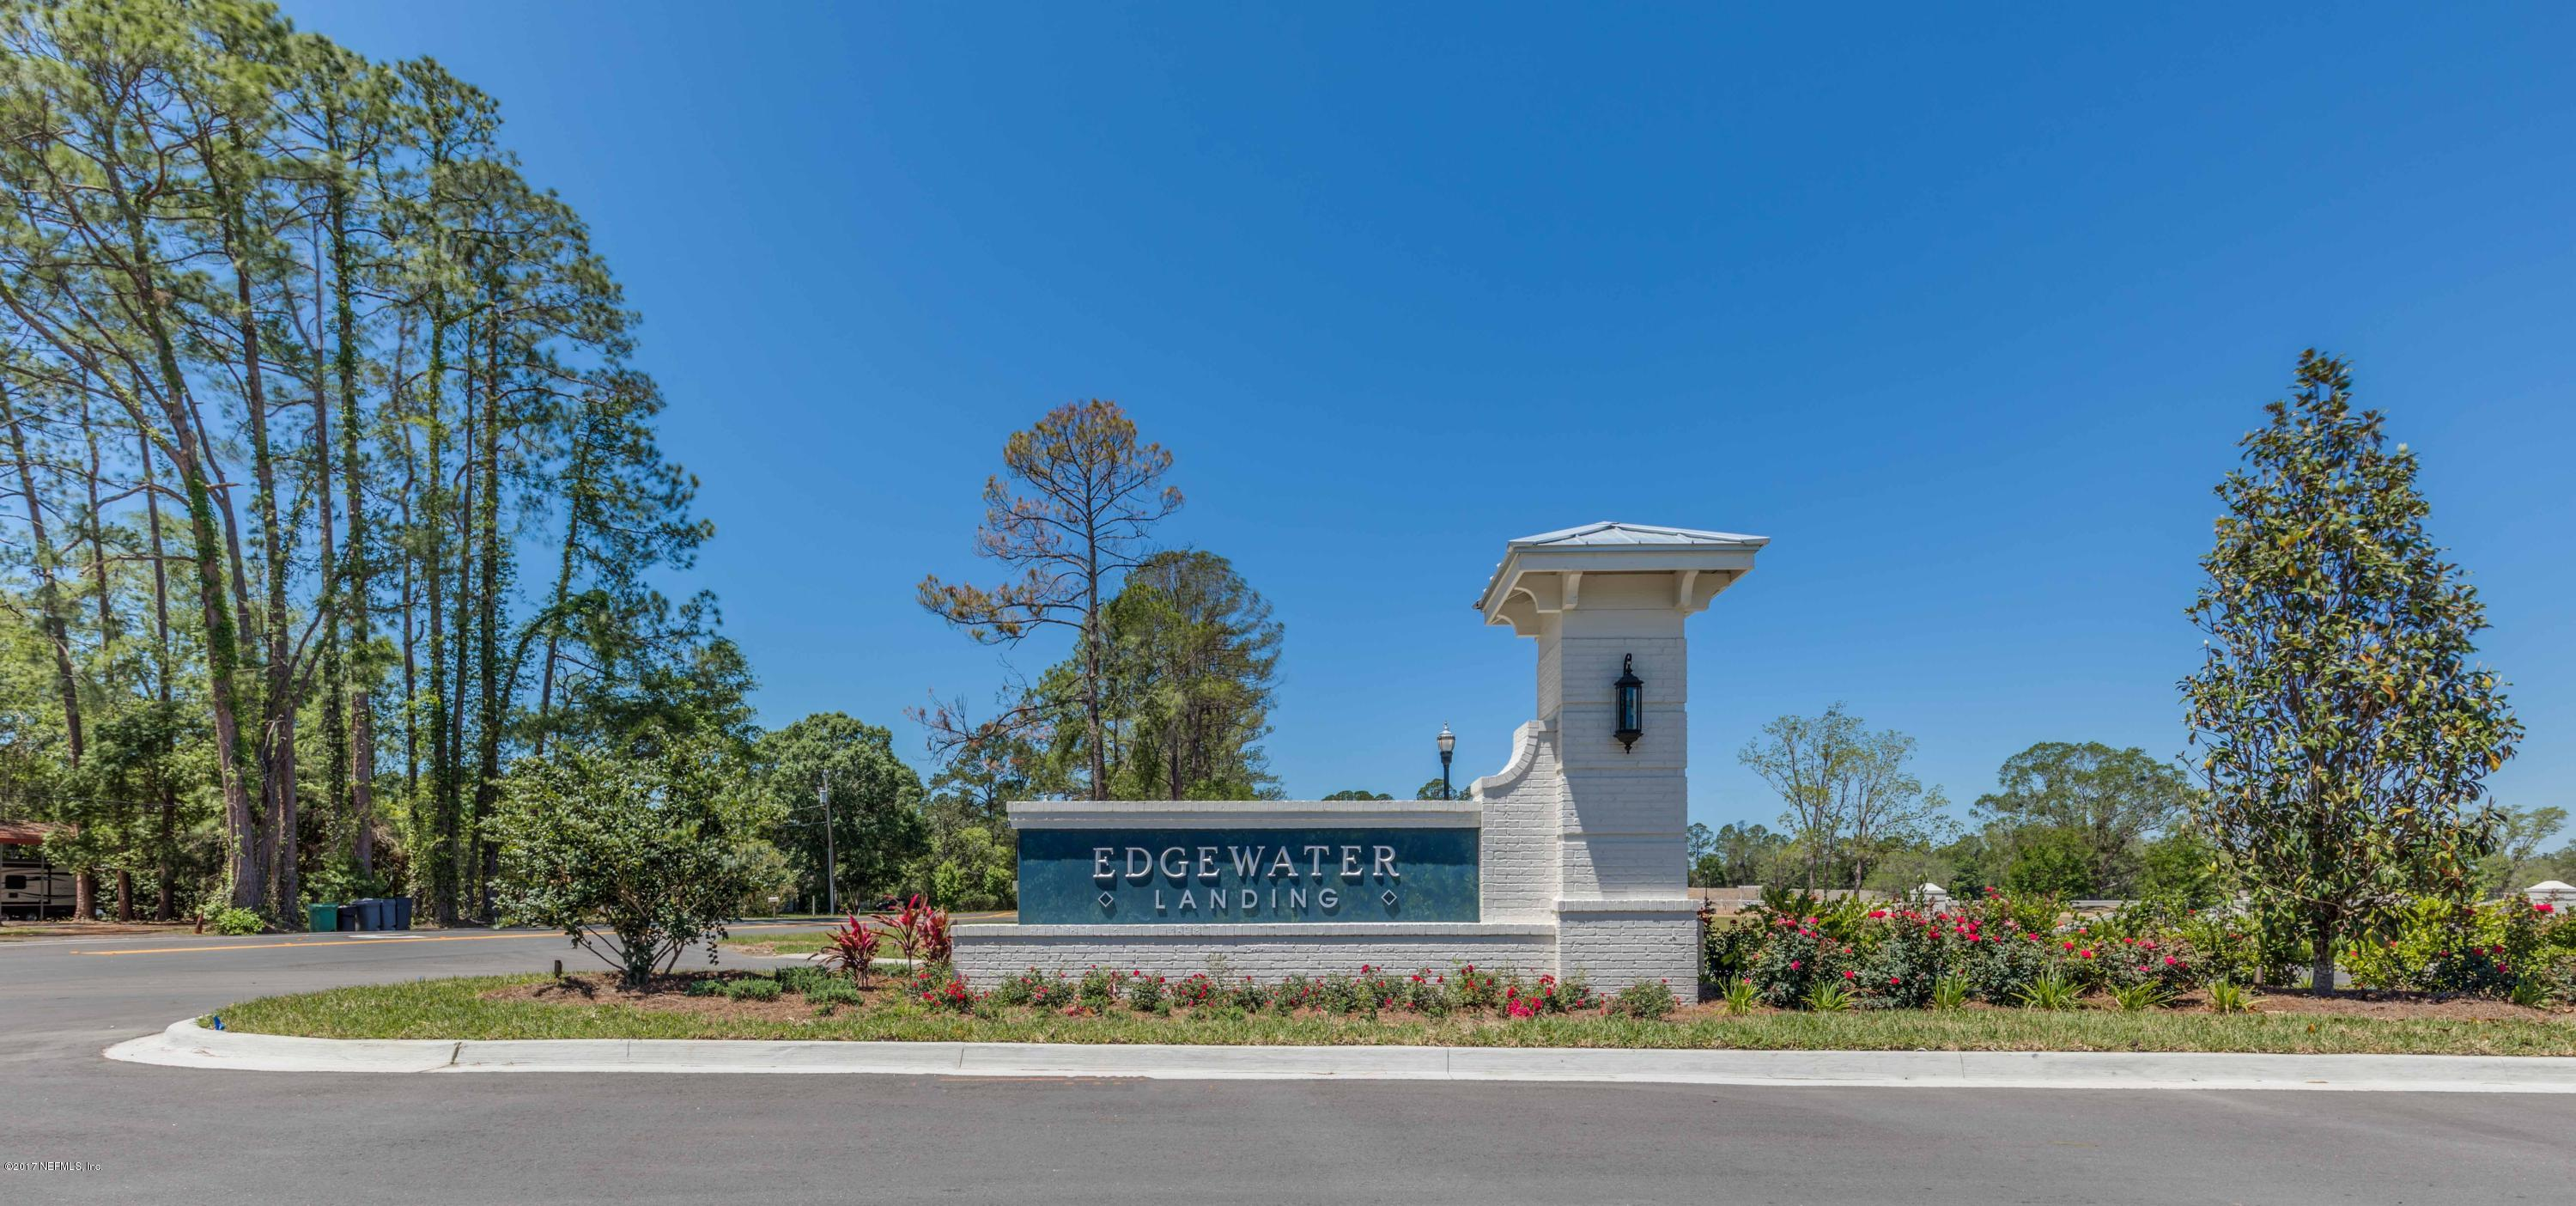 3123 TUESDAYS, GREEN COVE SPRINGS, FLORIDA 32043, 4 Bedrooms Bedrooms, ,2 BathroomsBathrooms,Residential,For sale,TUESDAYS,1046609